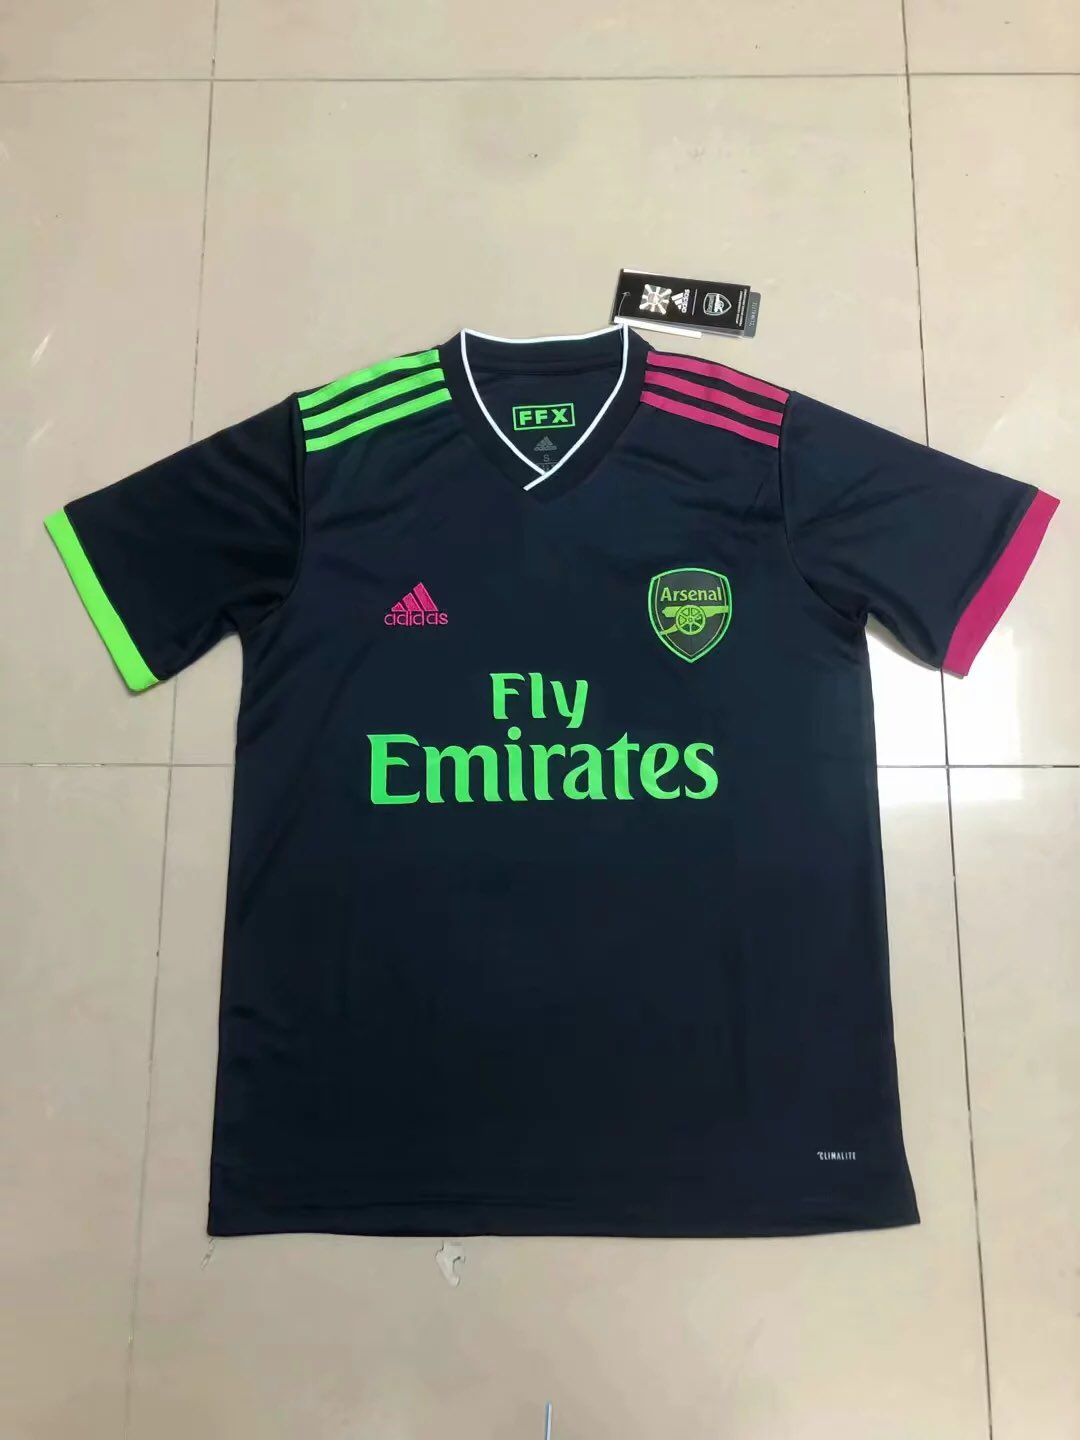 Football Fx On Twitter Leaked Arsenal Away Kit 2020 2021 Kit What Are Your Thoughts